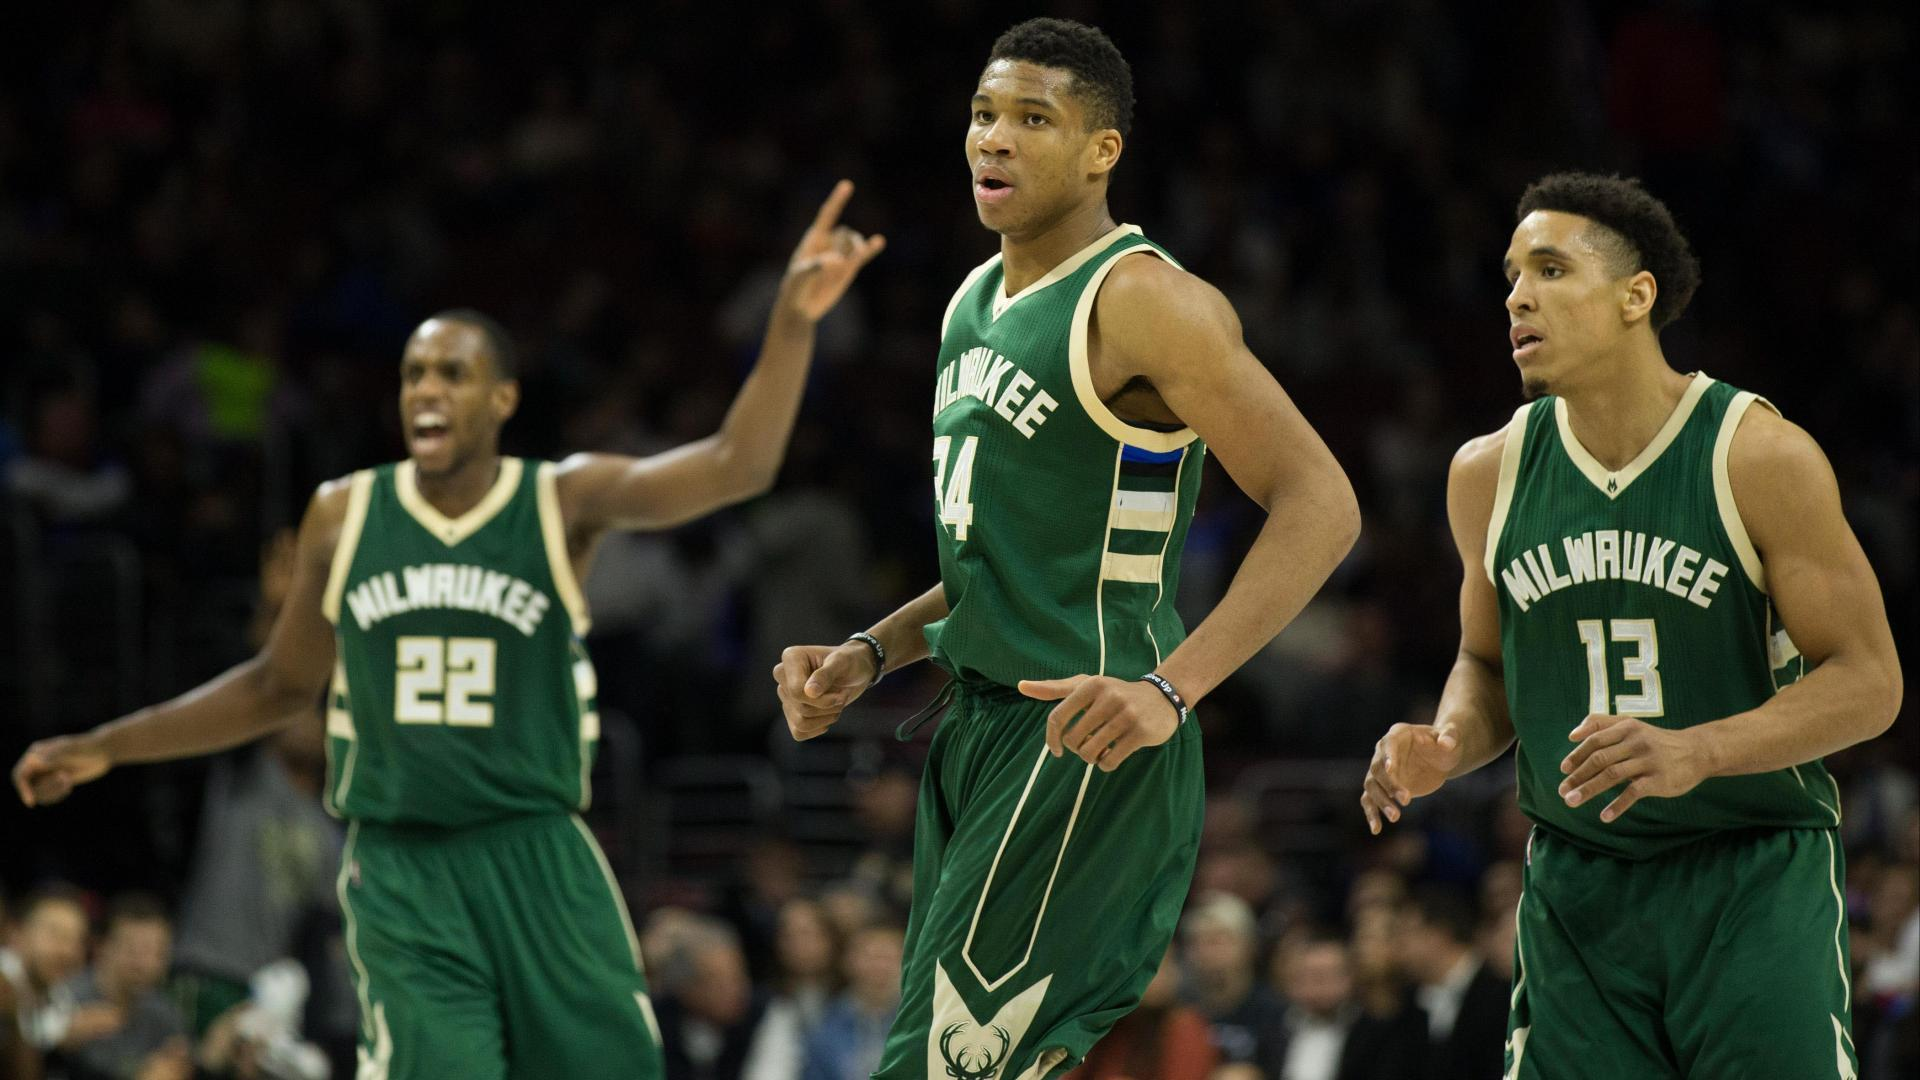 VIDEO/ Shifër jubilare për Antetokounmpo, Bucks shtypin Chicago Bulls